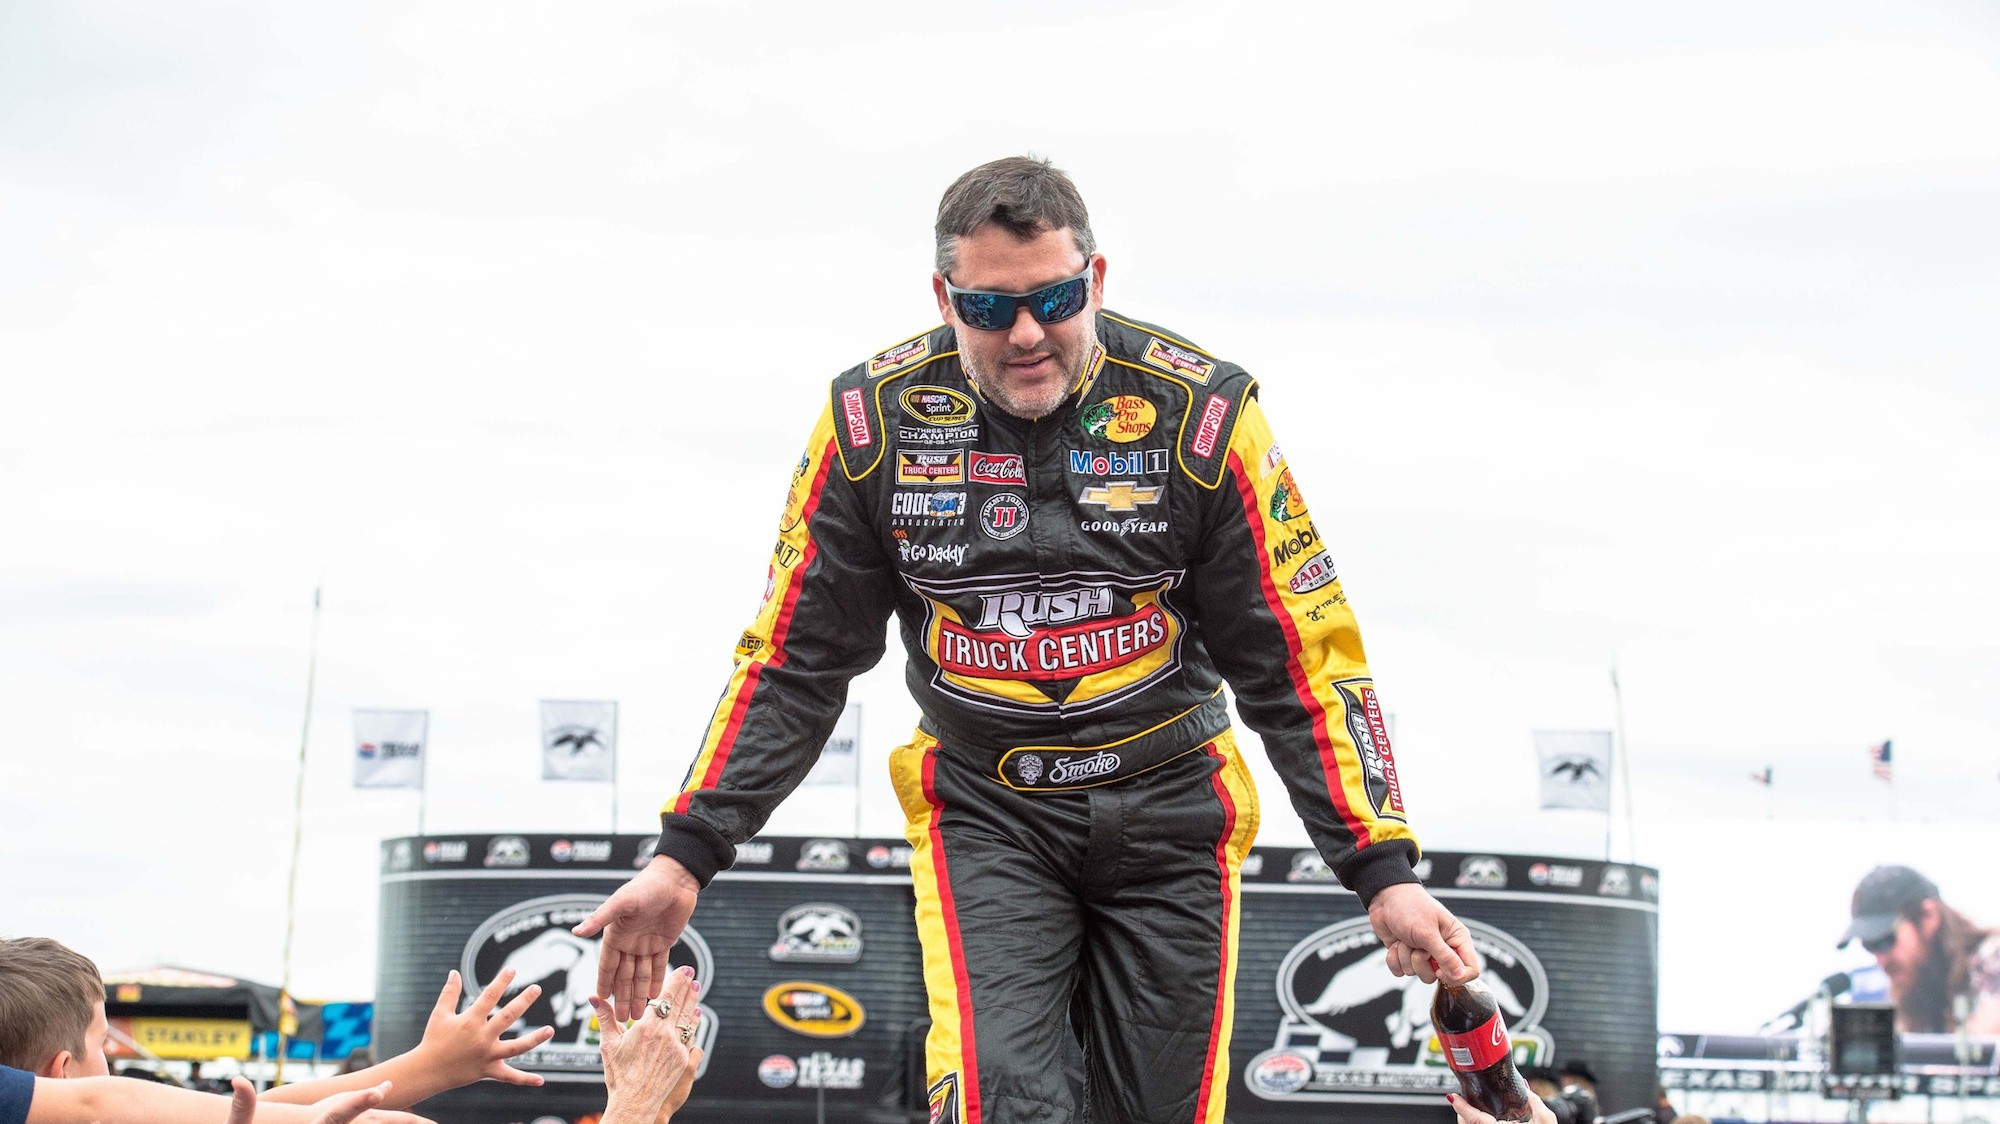 If Tony Stewart Can Return This Season, He Will—For His Fans